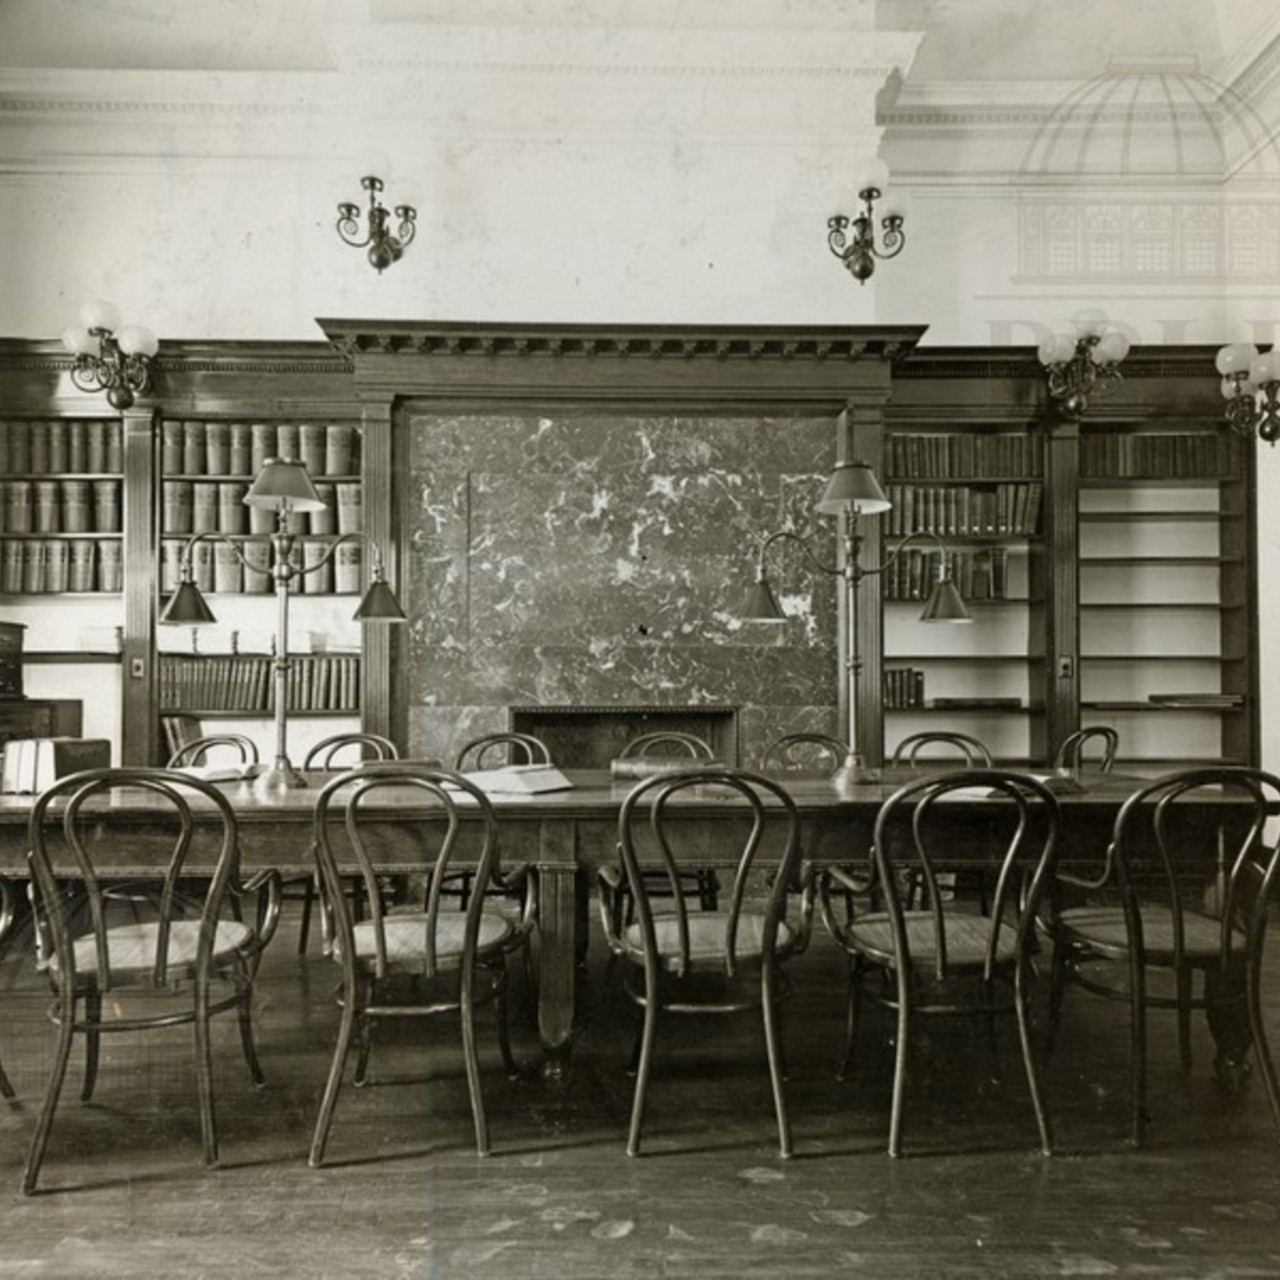 South Reading Room